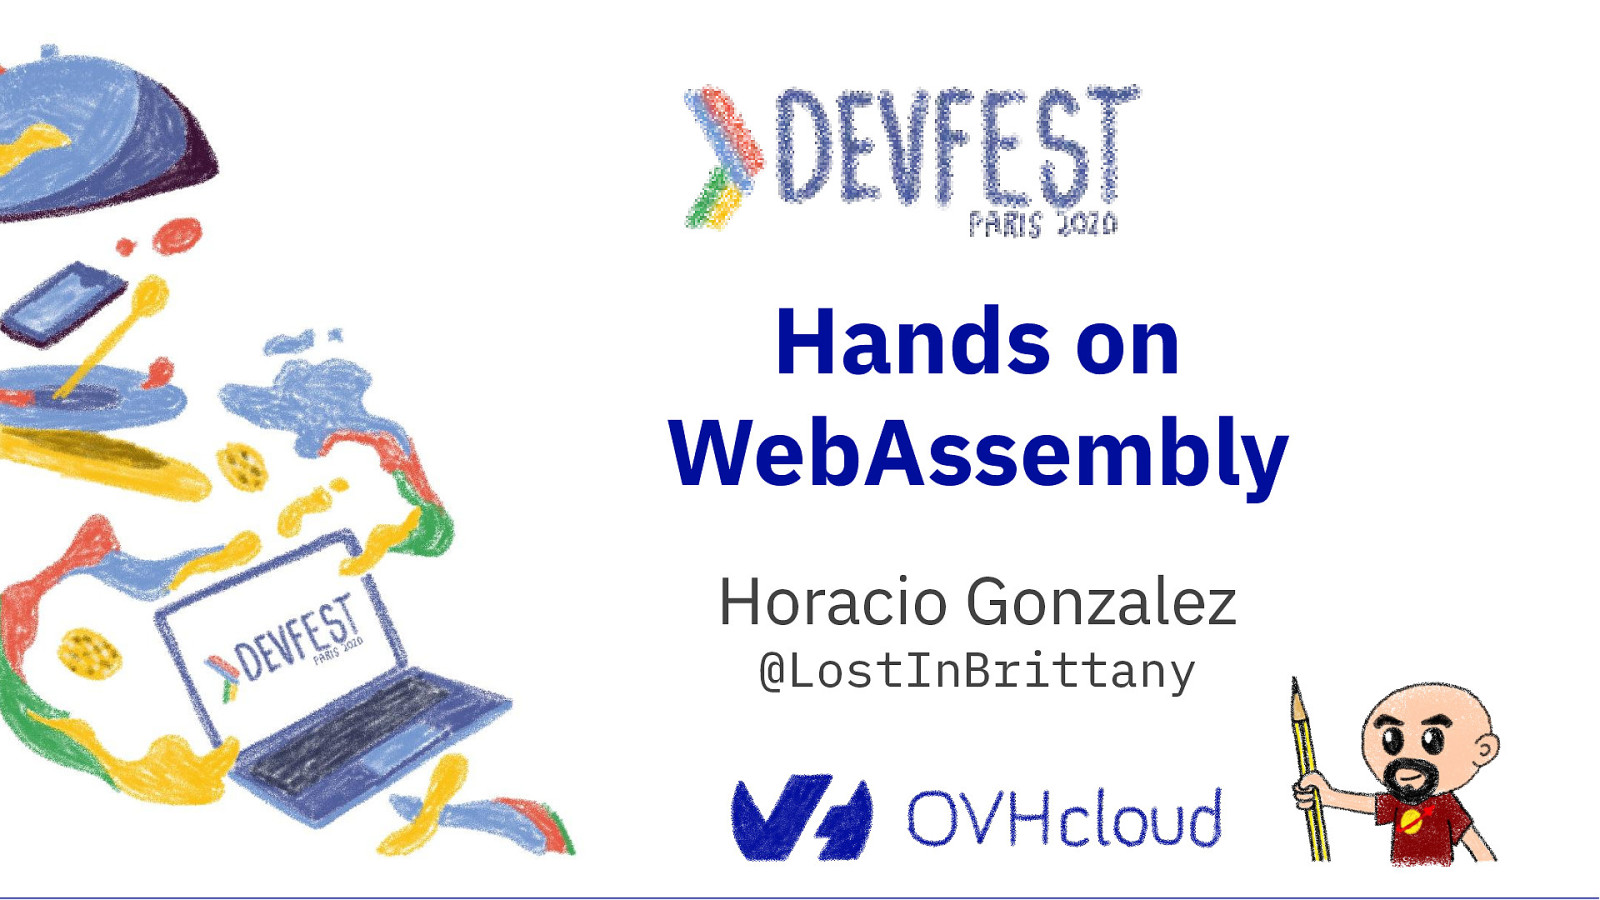 Hands-on-lab: Hands on WebAssembly